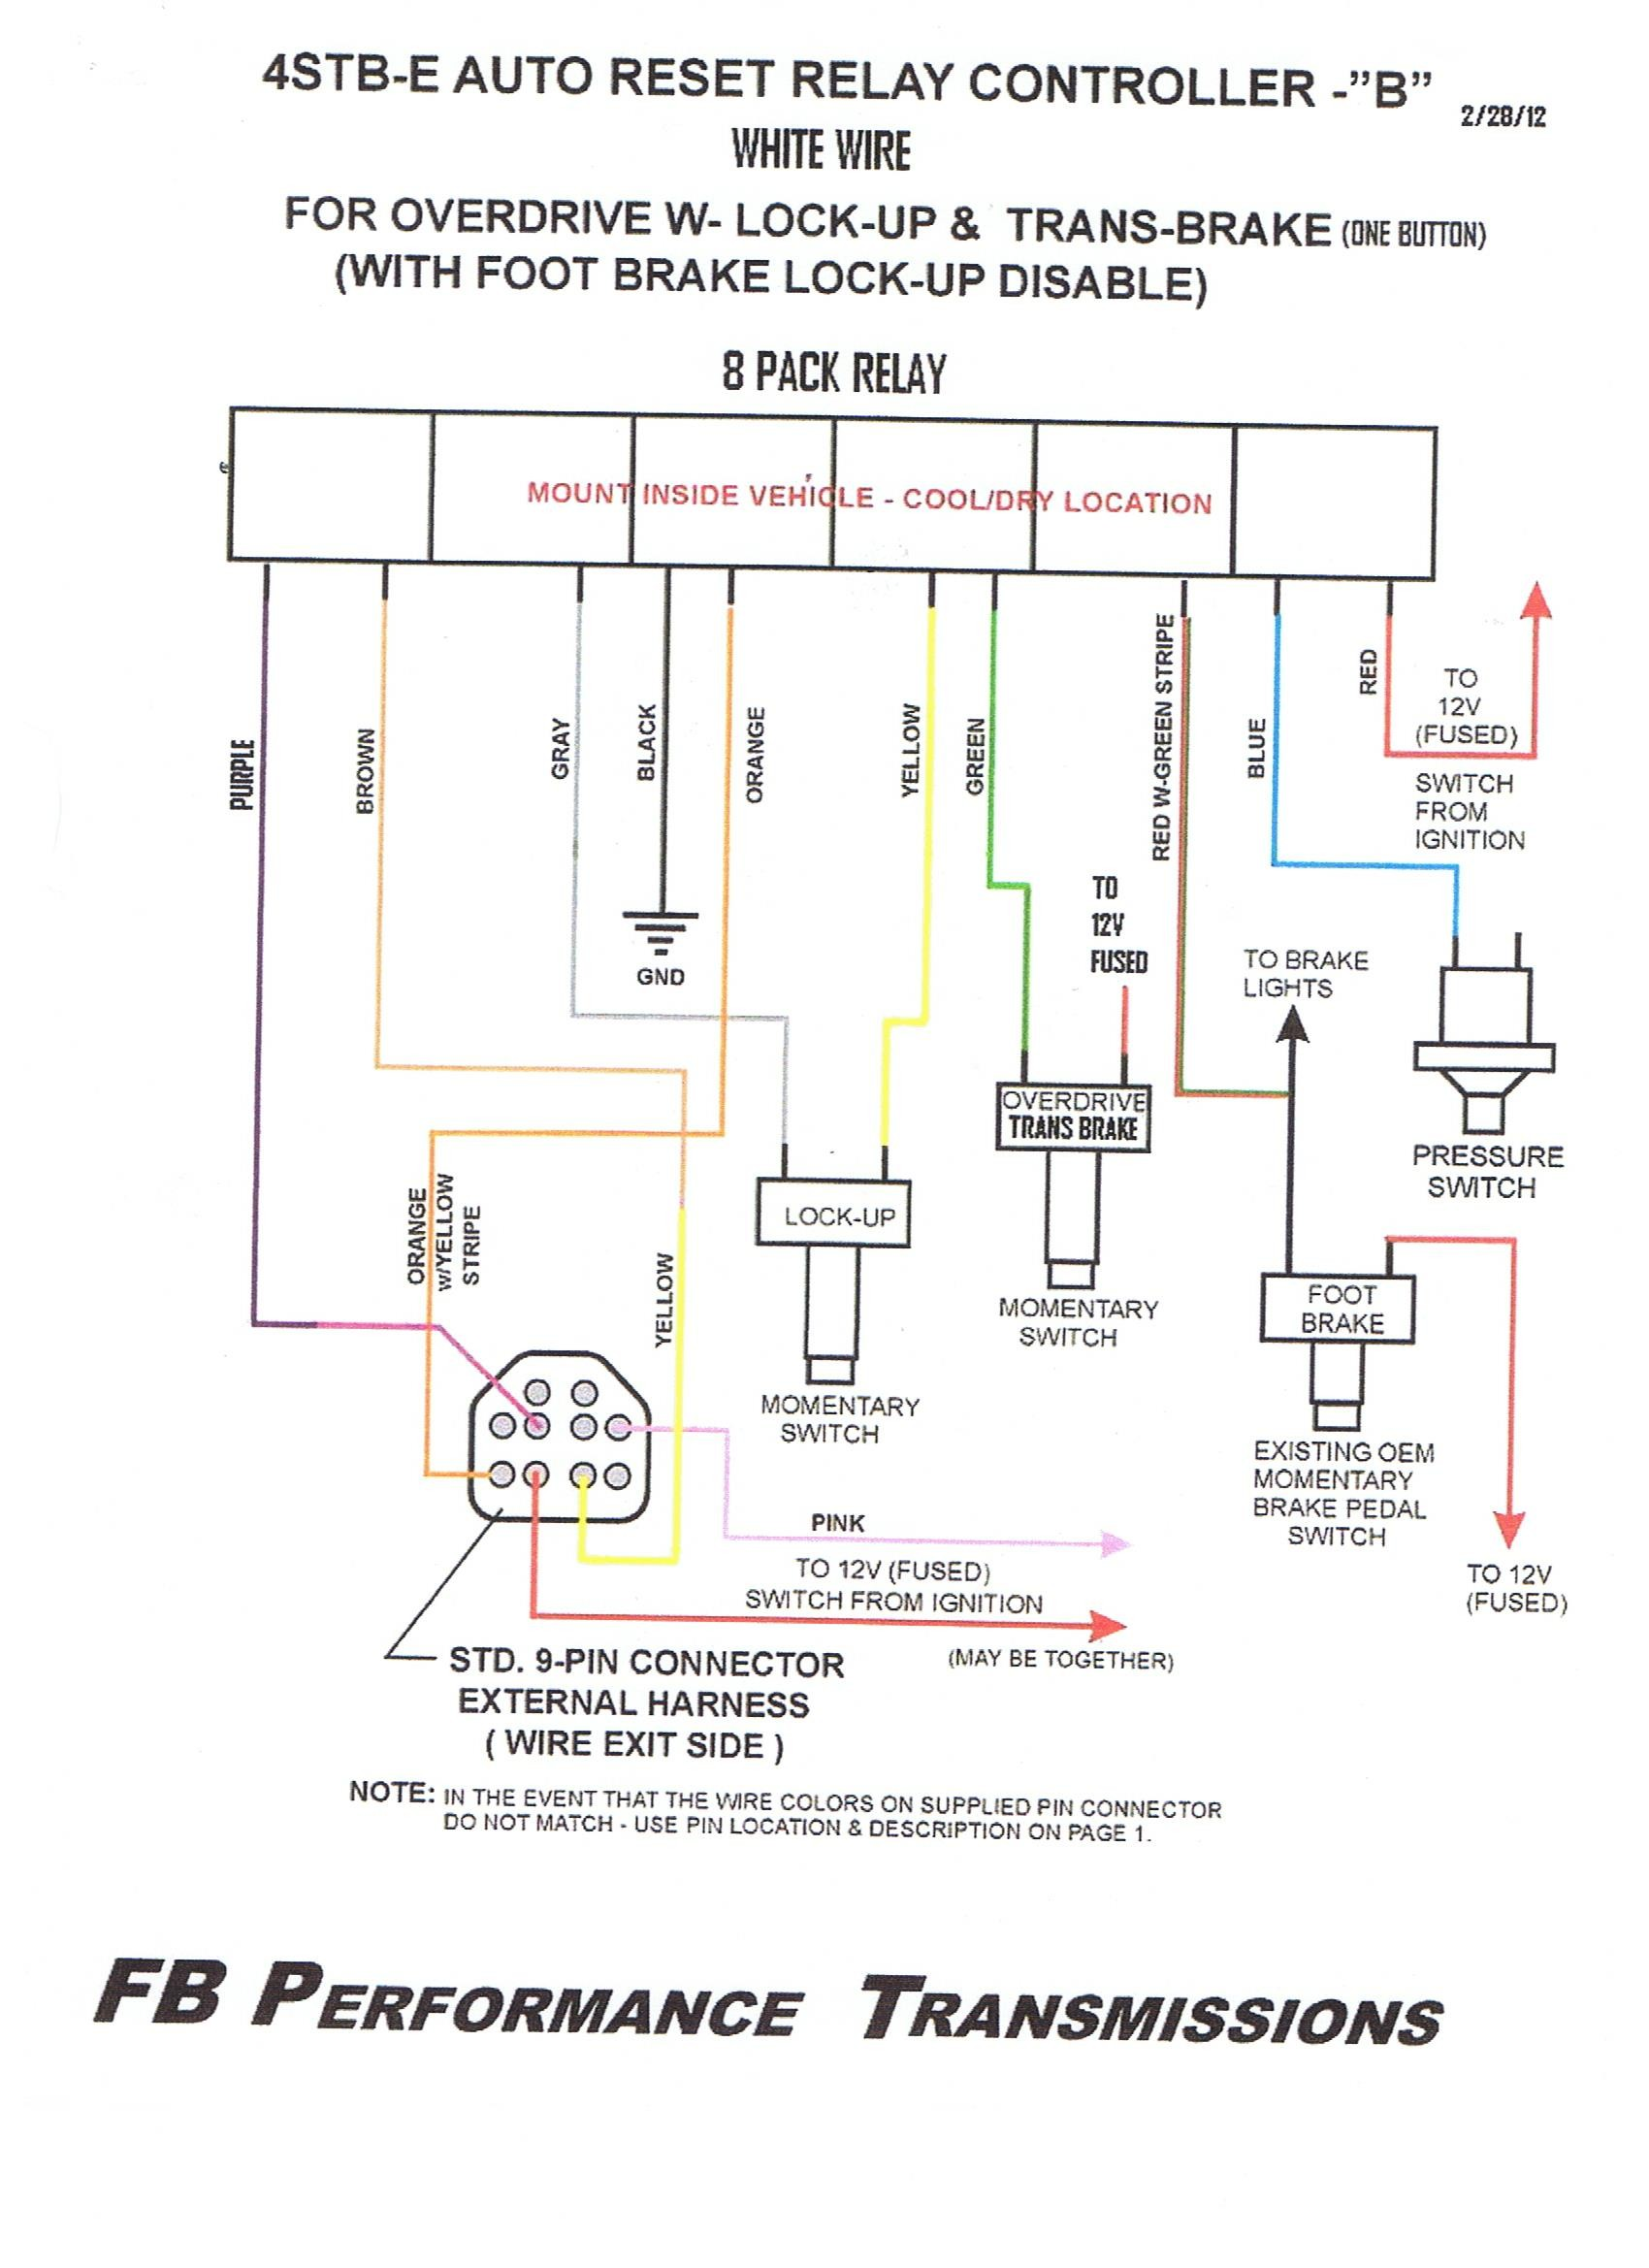 WIRING and Operation 9 pin Feb 2012